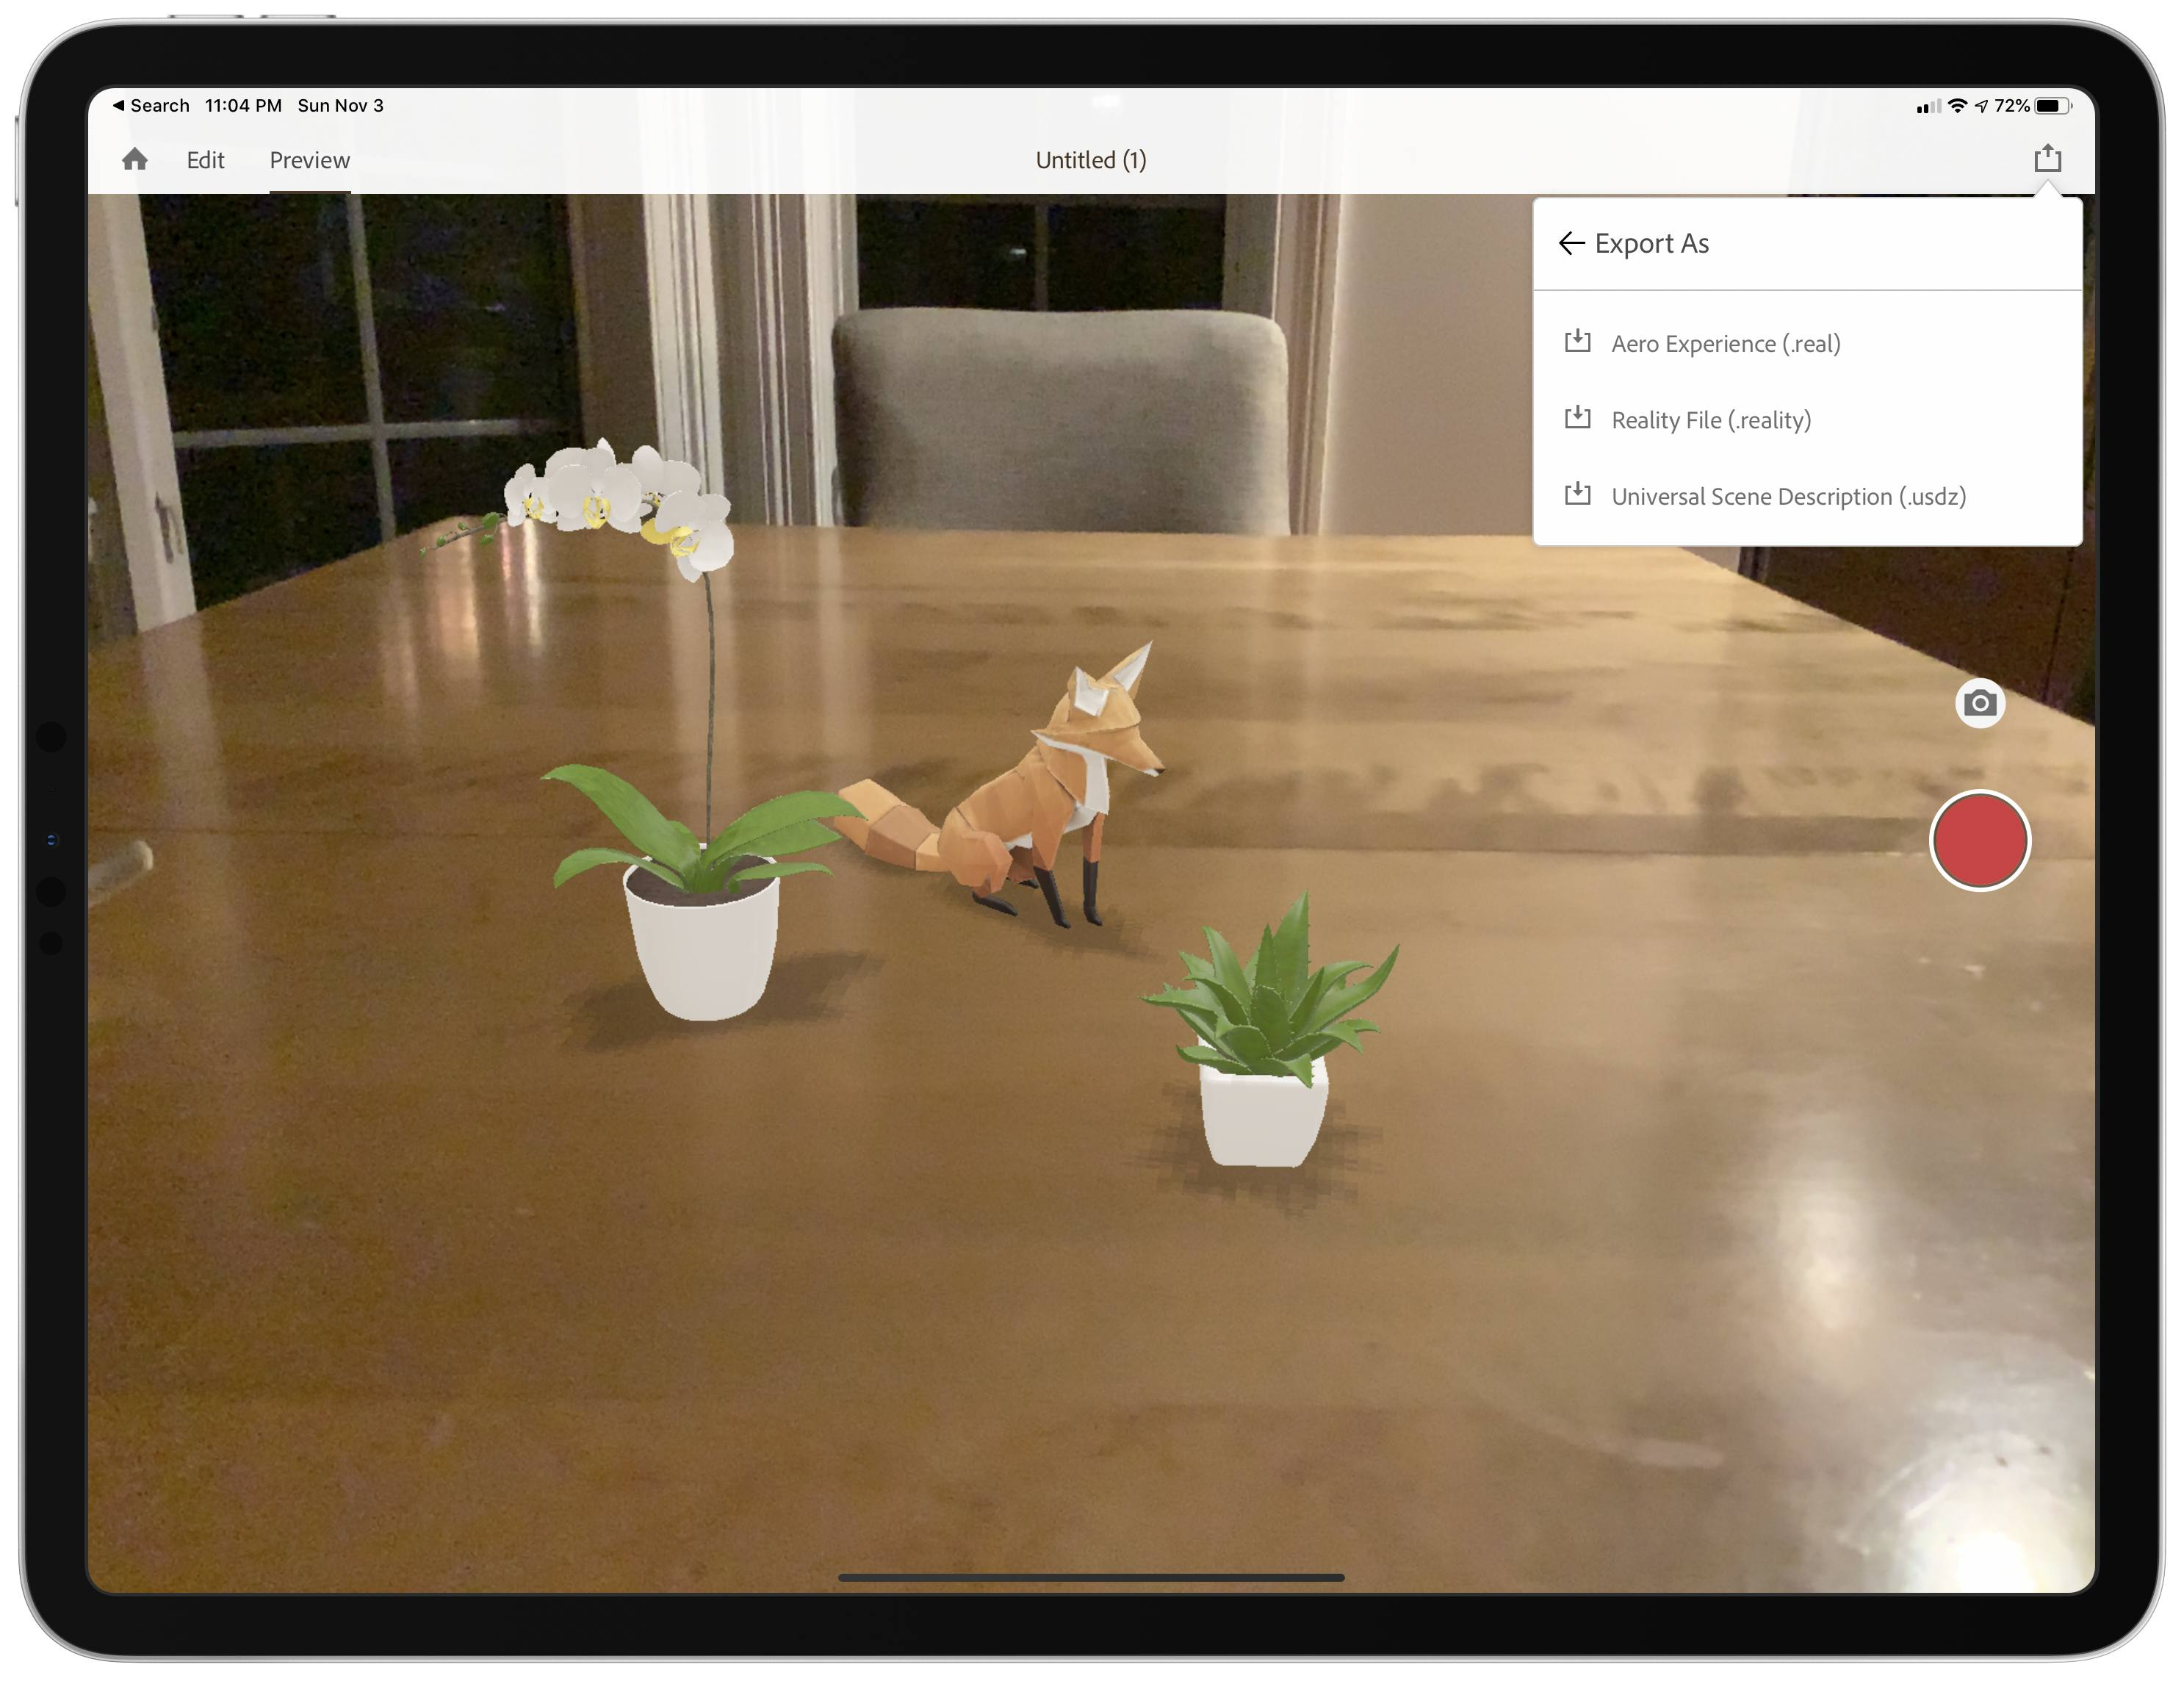 In no time at all, I had a fox jumping around two potted plants on my kitchen table using Aero.